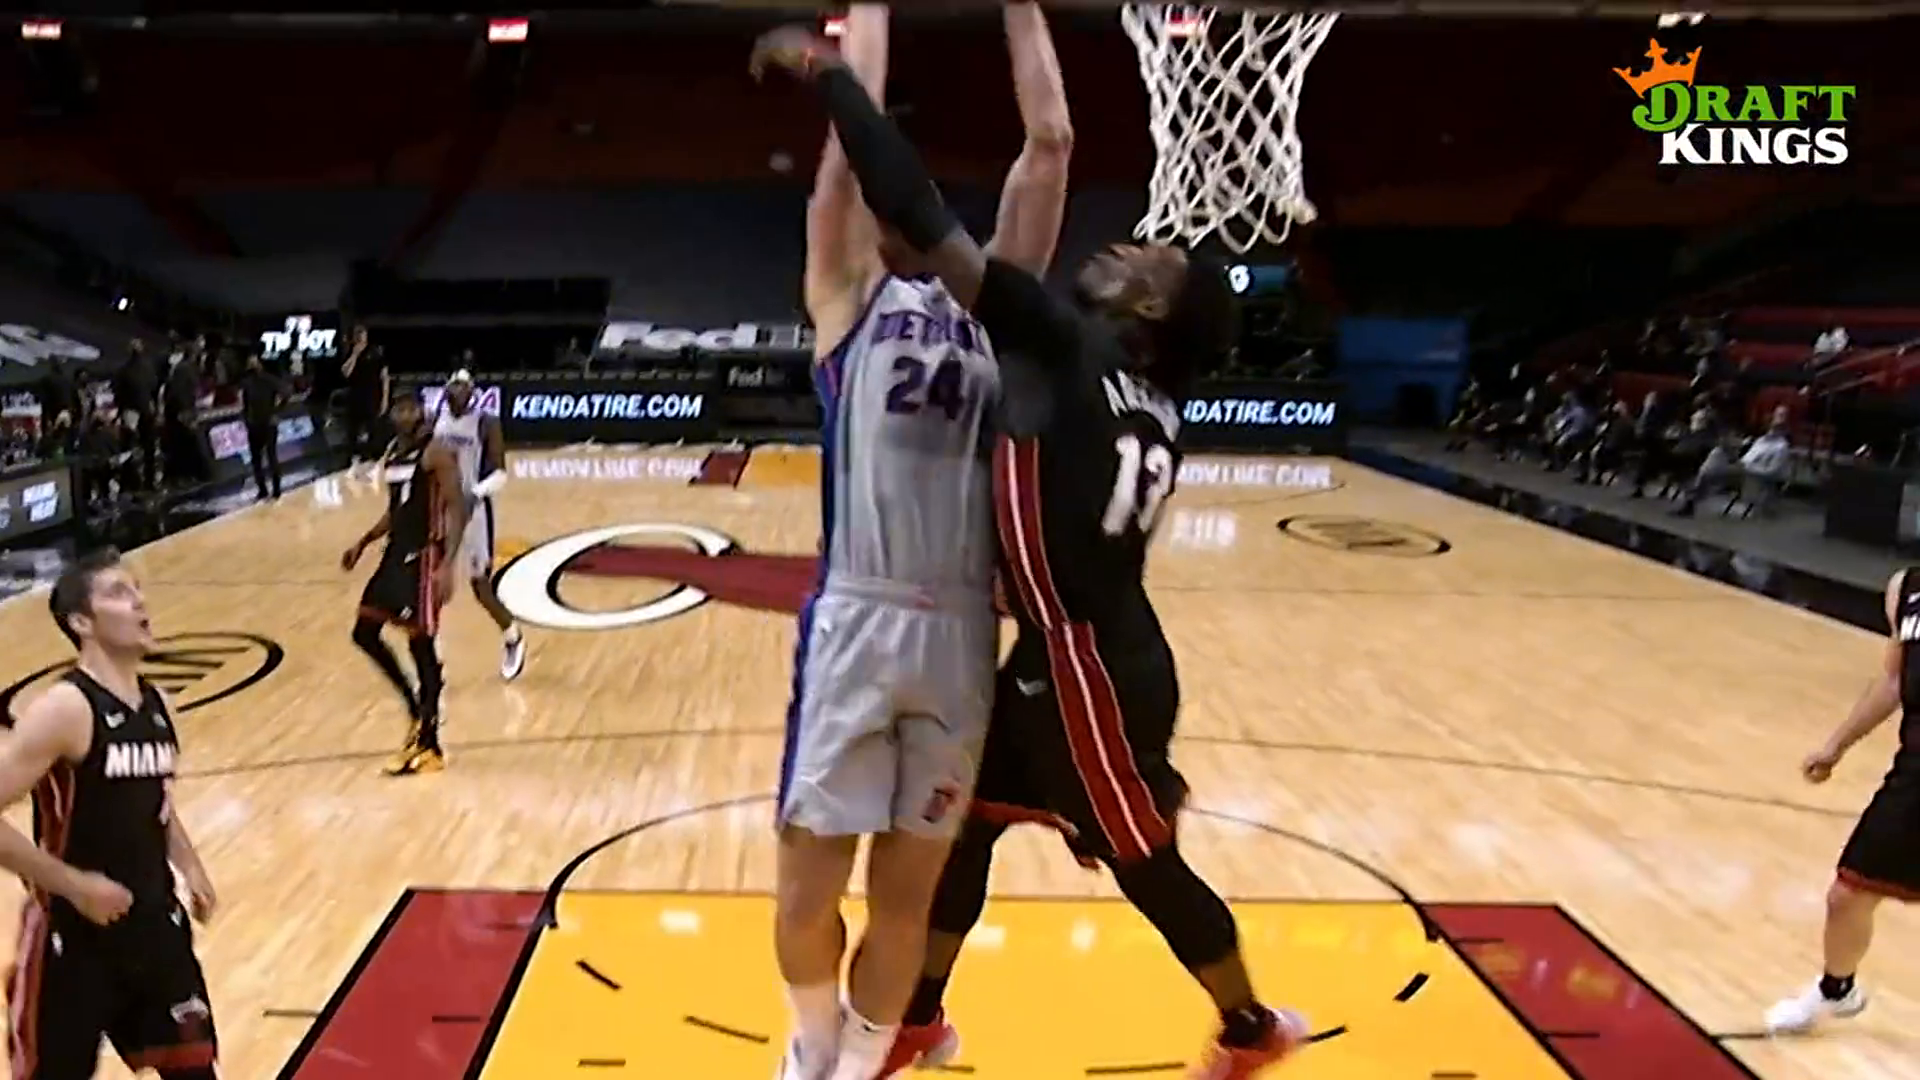 Dunk of the Week, presented by Draft Kings: Mason Plumlee